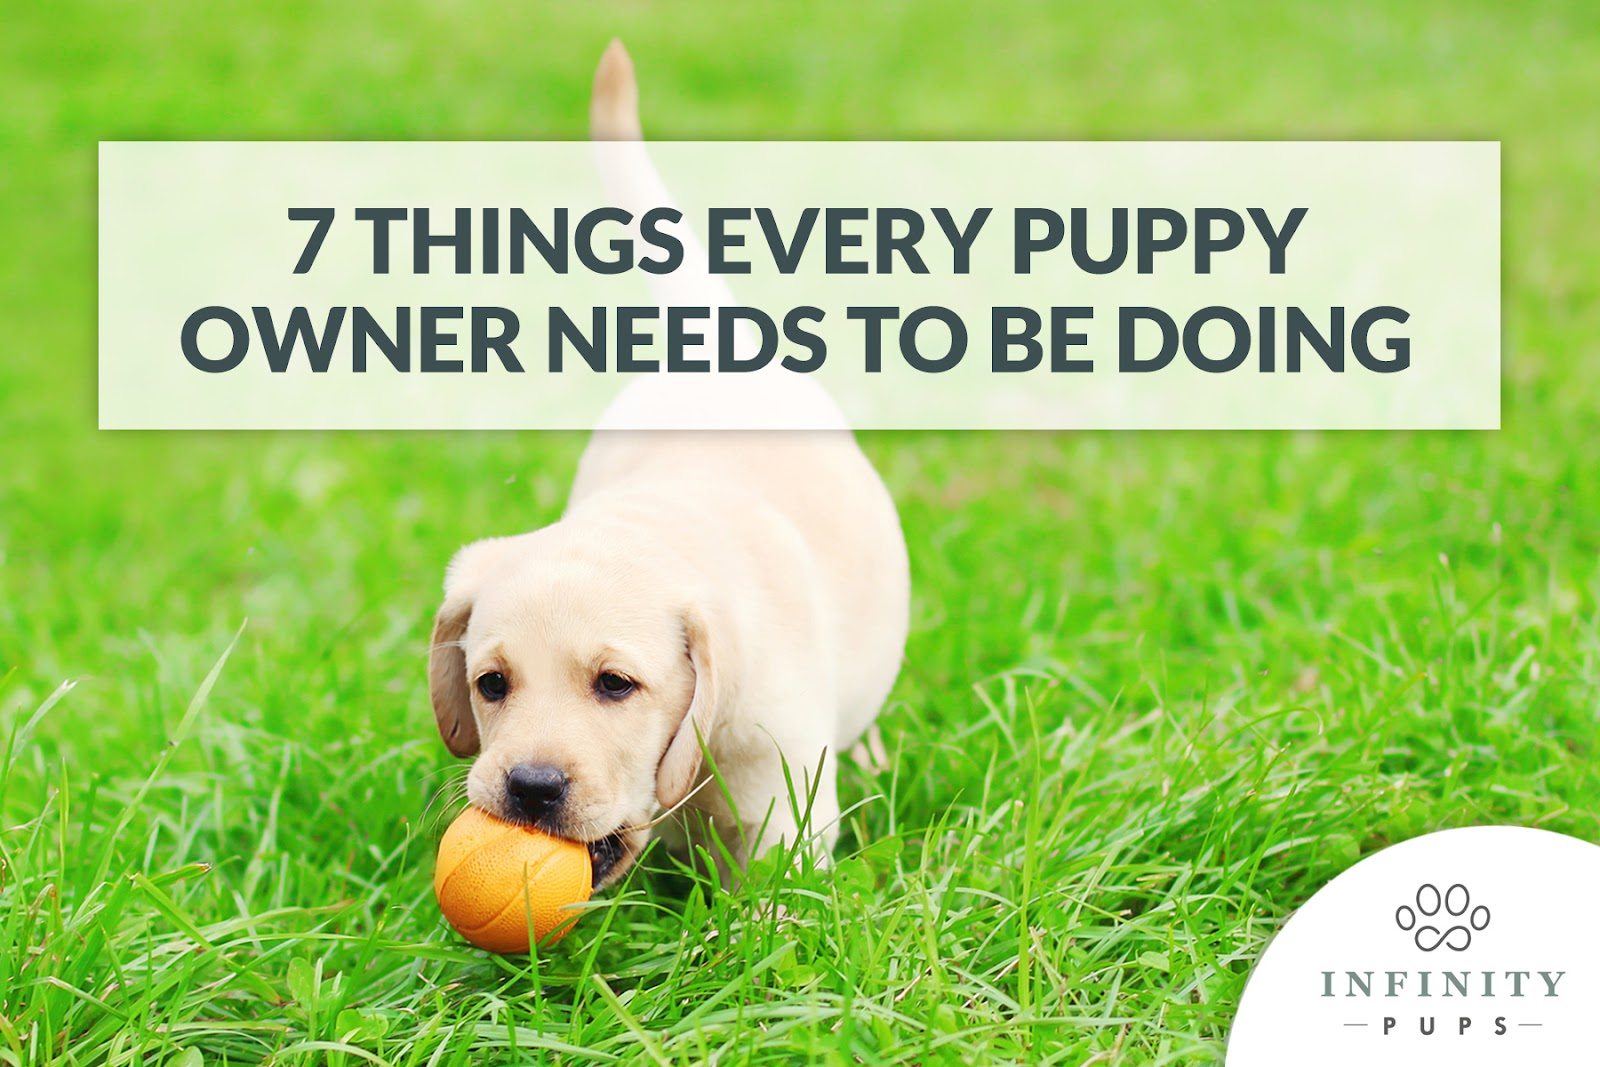 7 things every puppy owner needs to be doing